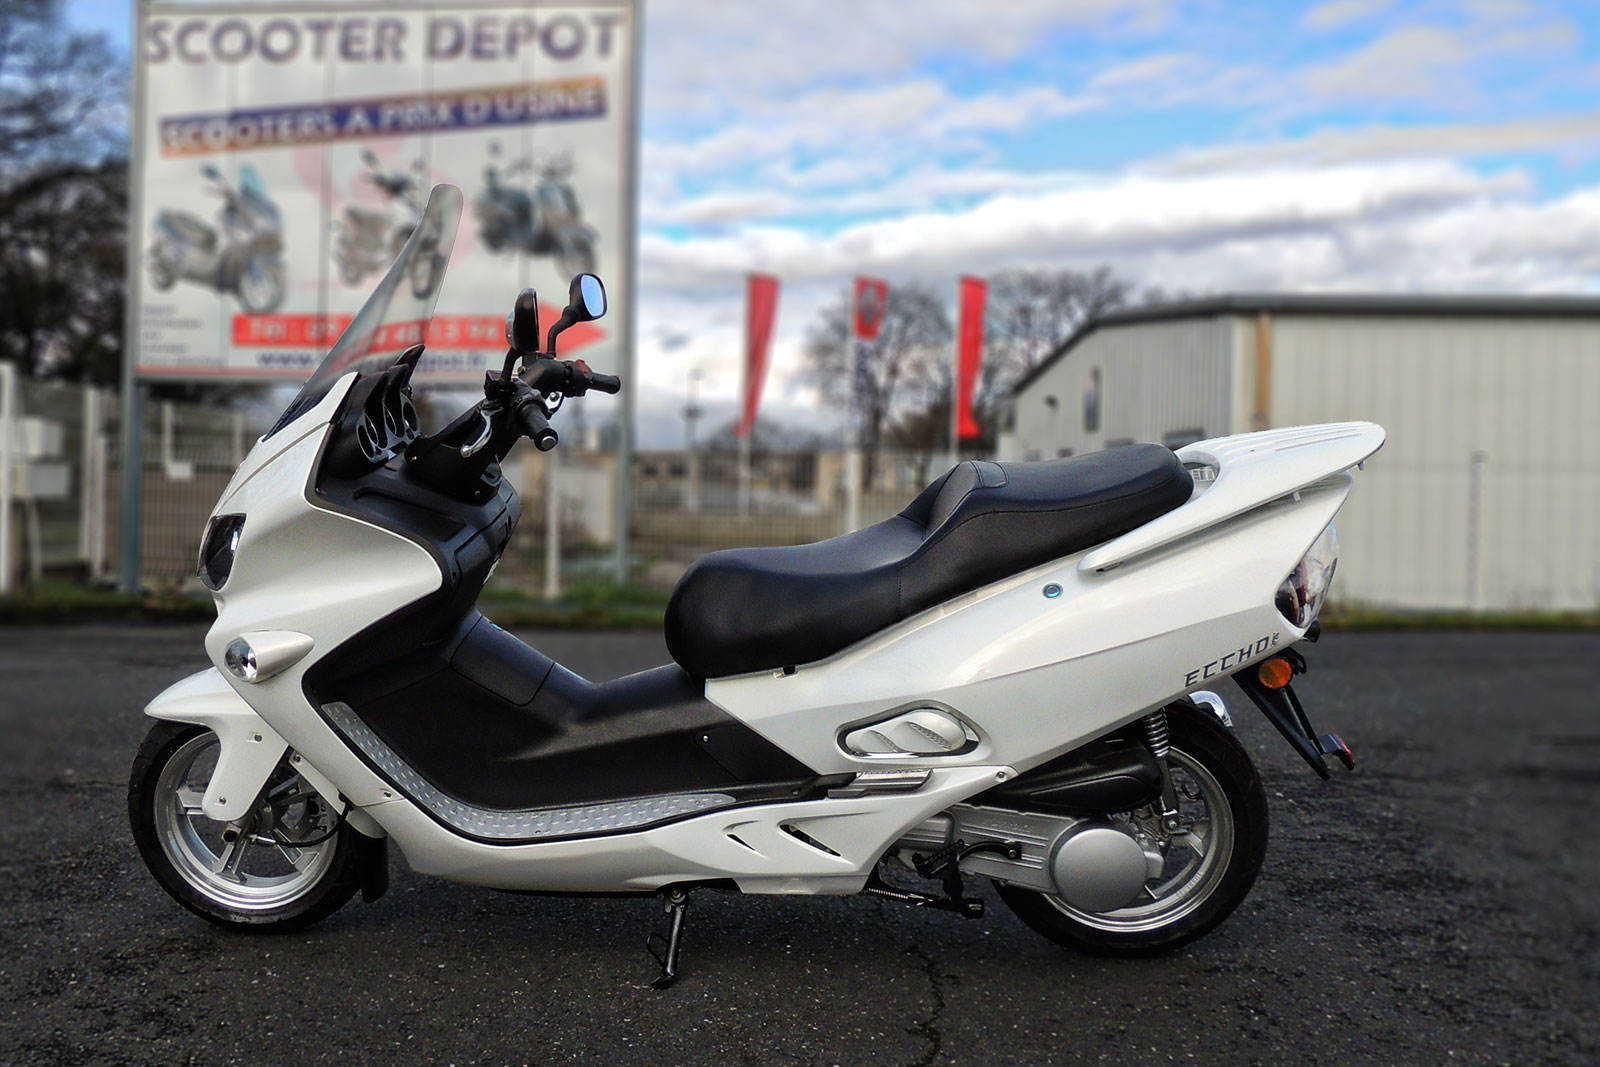 SCOOTER-125-ECCHO-GT-STAR-WHITE-SERIES-03